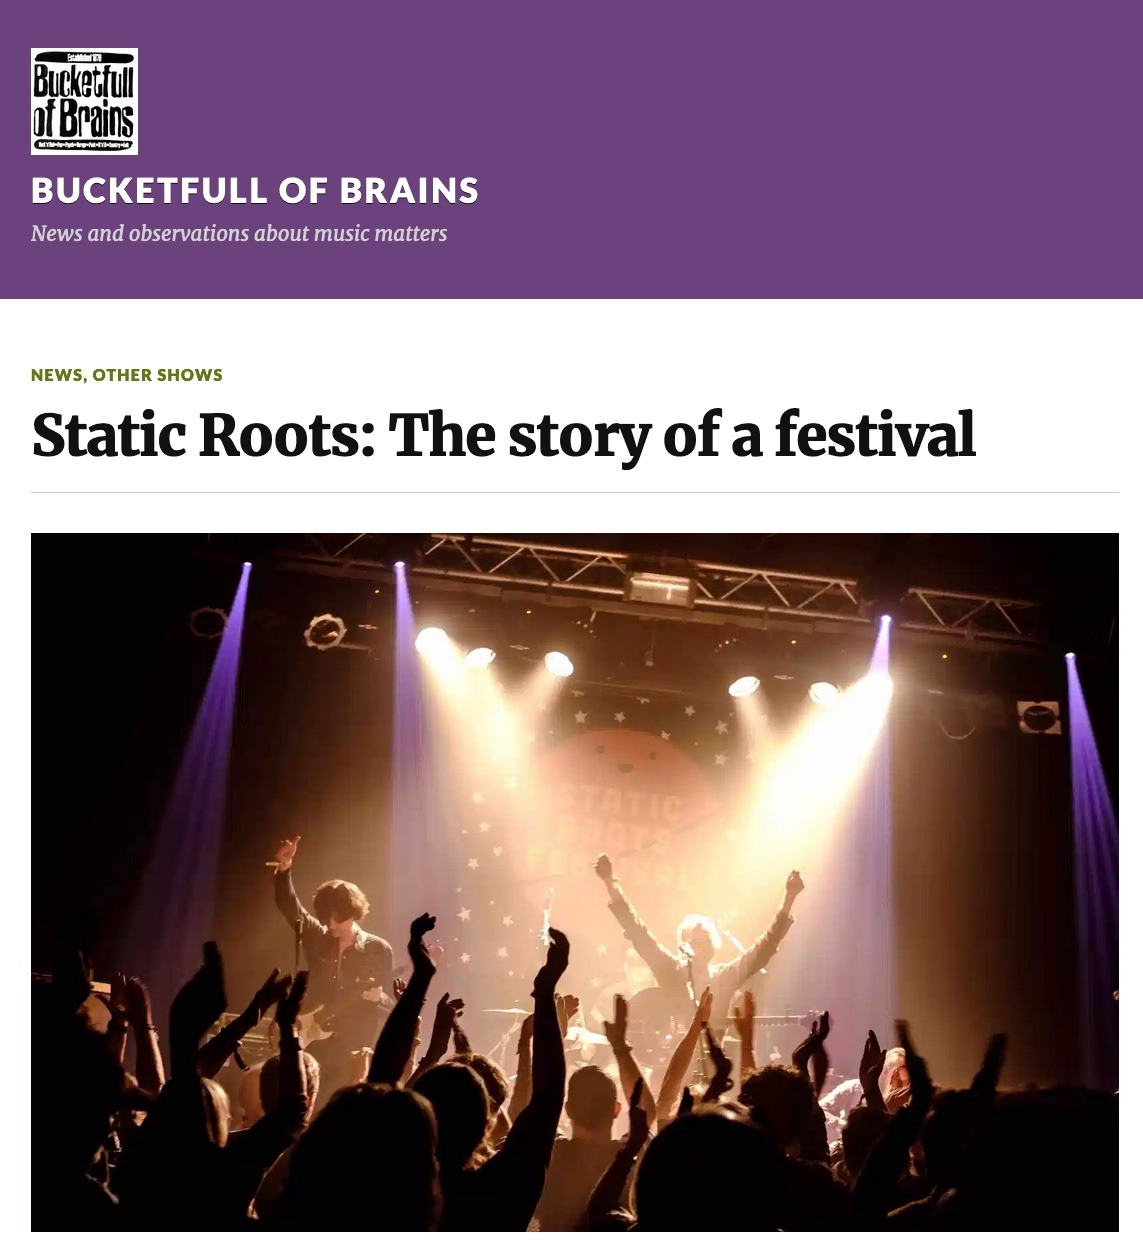 bucketfull_of_brains_nick_west_static_roots_the_story_of_a_festival